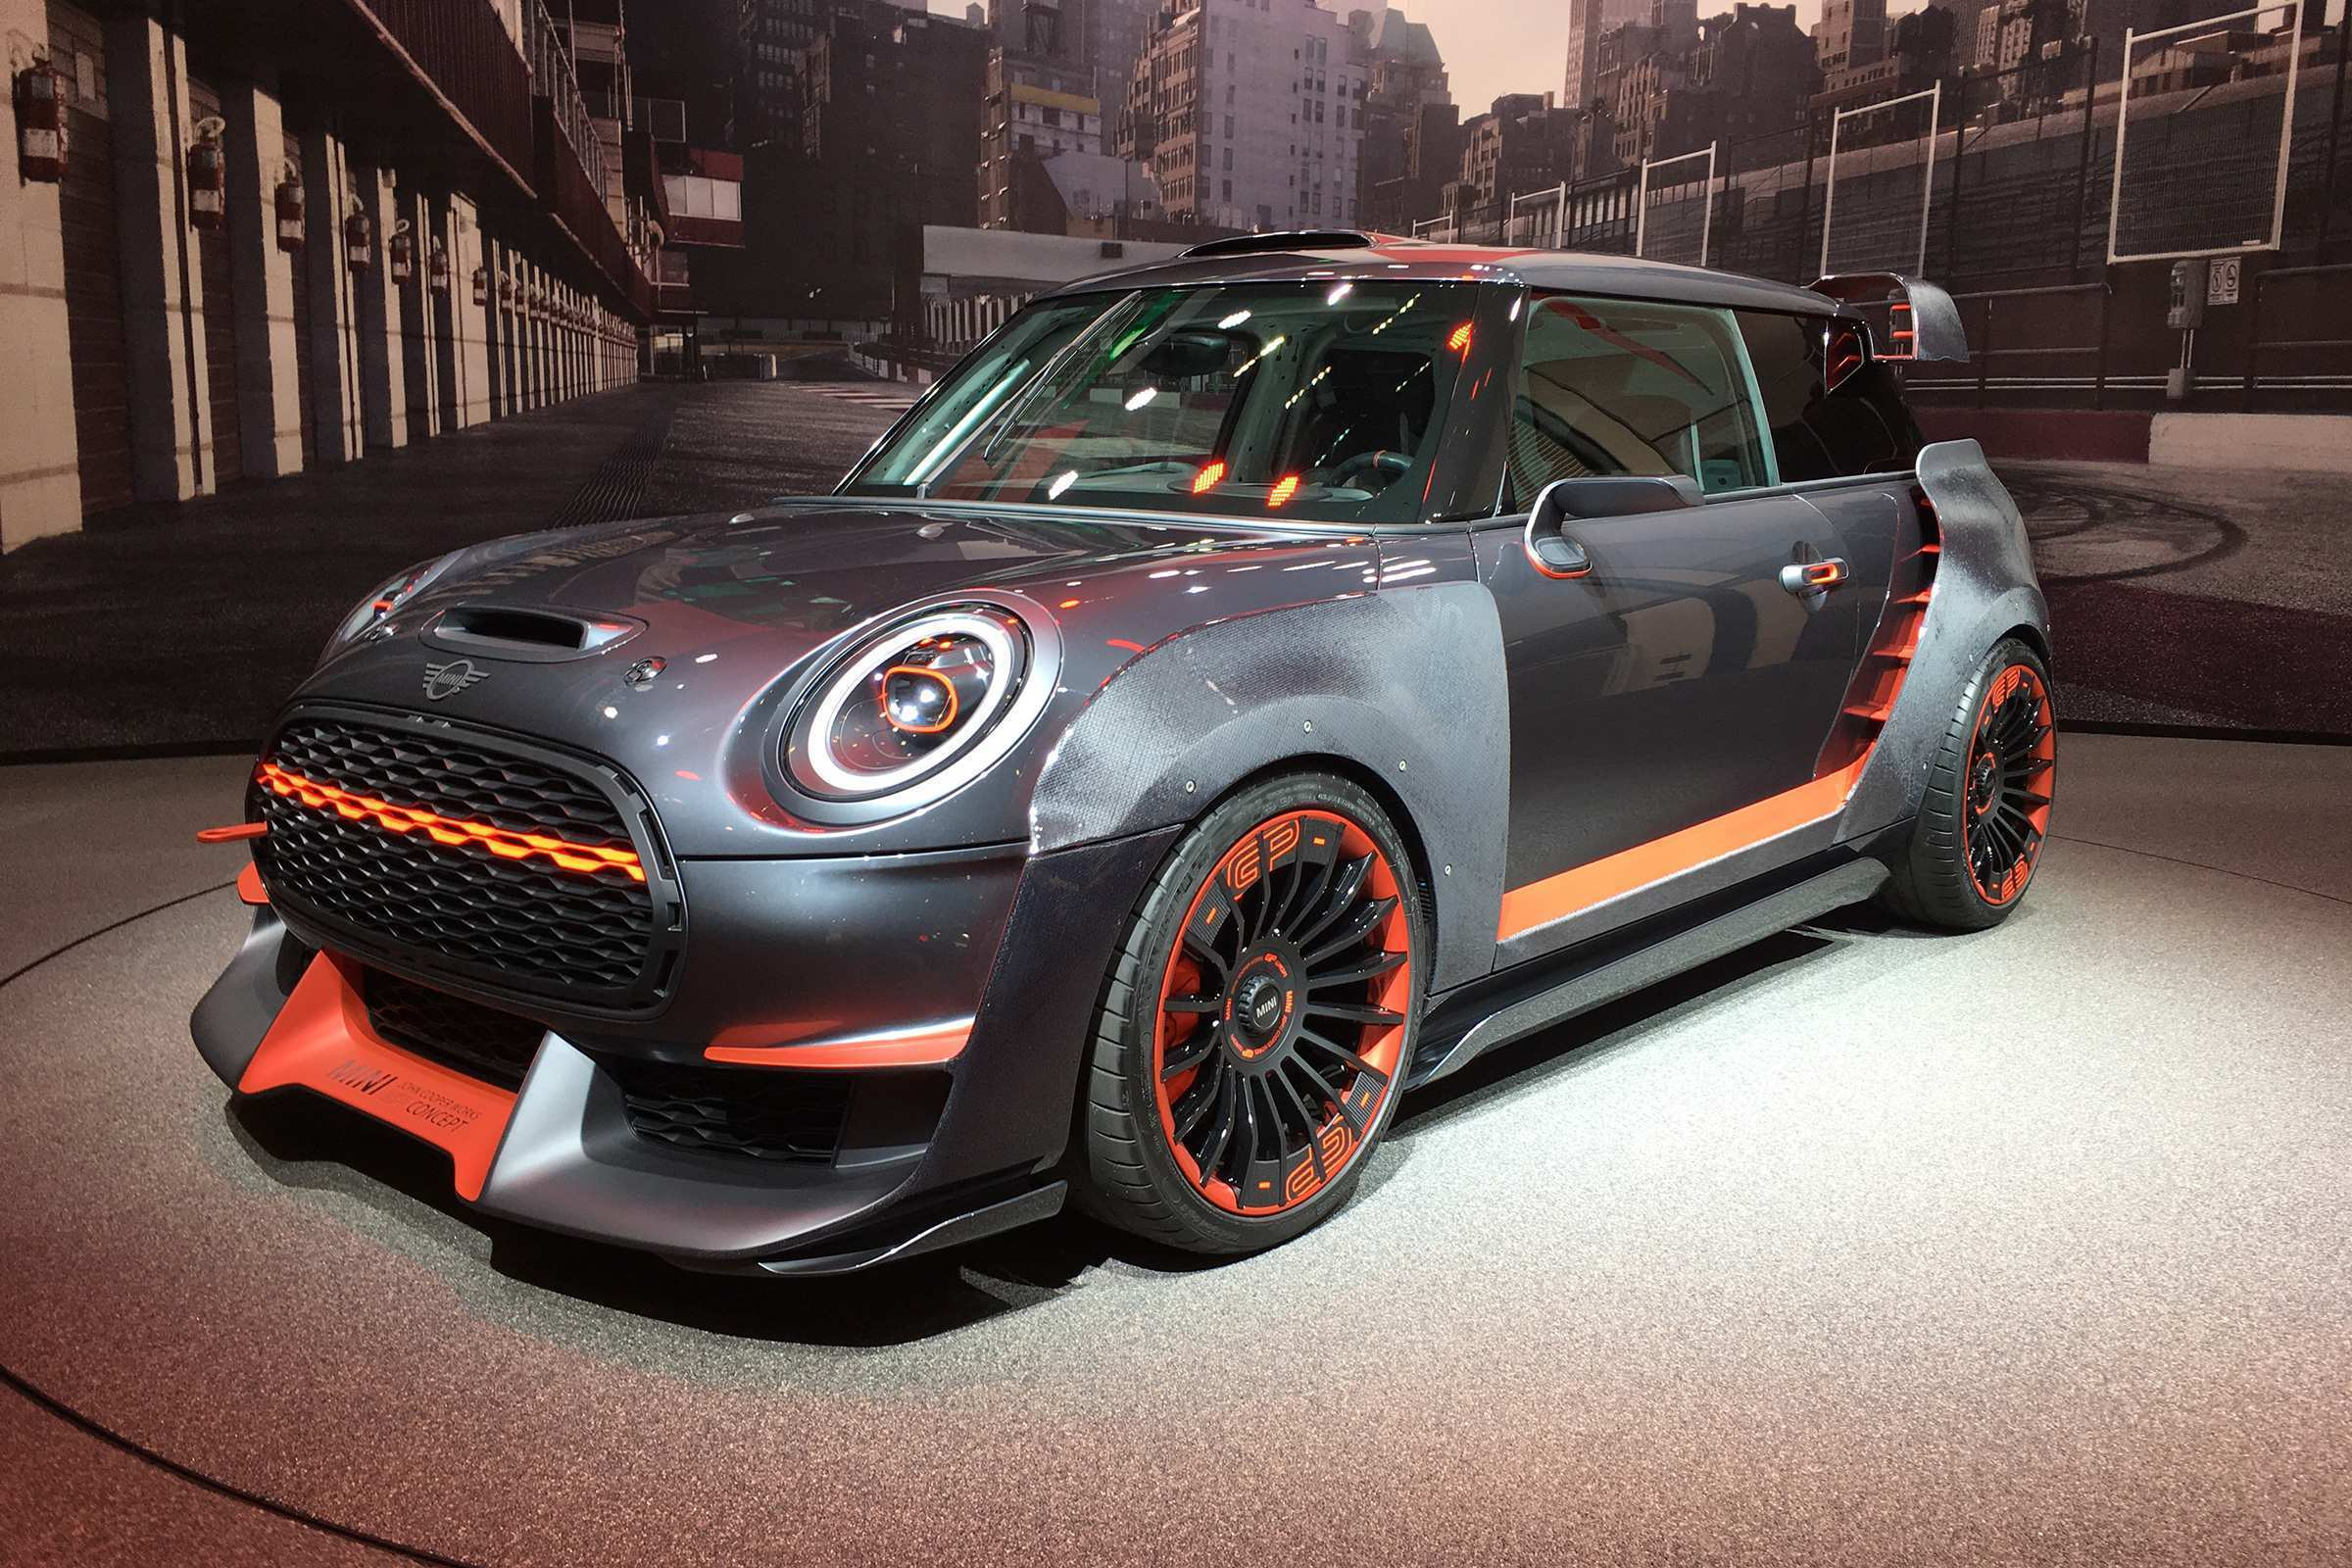 97 Gallery of 2019 Mini Jcw Gp Research New by 2019 Mini Jcw Gp